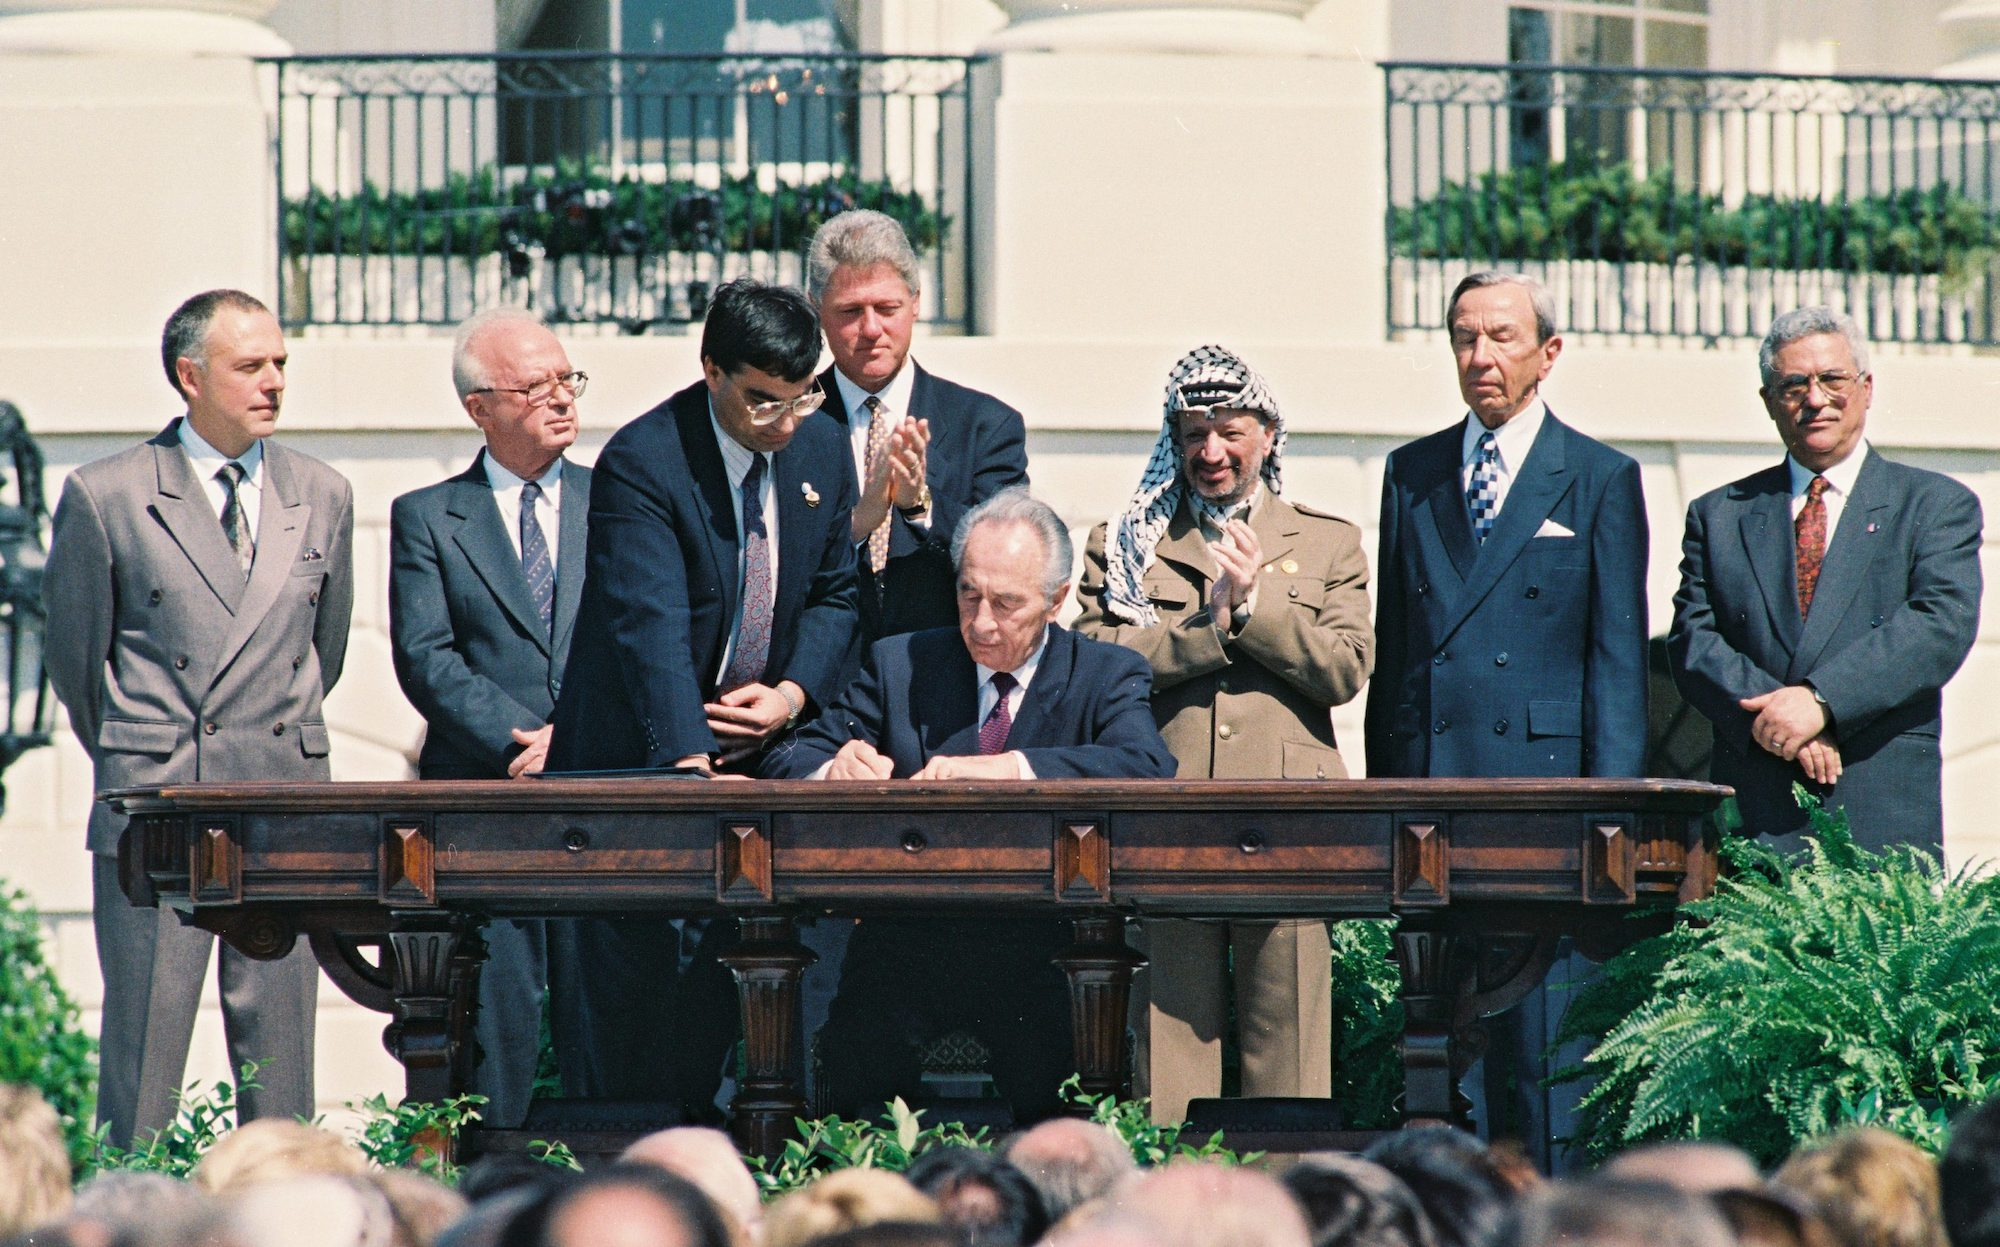 Israeli Foreign Minister Shimon Peres signs the Oslo Accords on the White House Lawn. Behind him are U.S. President Bill Clinton, PLO Chairman Yasser Arafat, Israeli Prime Minister Yitzhak Rabin, Palestinian Prime Minister Mahmoud Abbas and other world leaders, Washington DC, September 13, 1994. (Avi Ohayon/GPO)